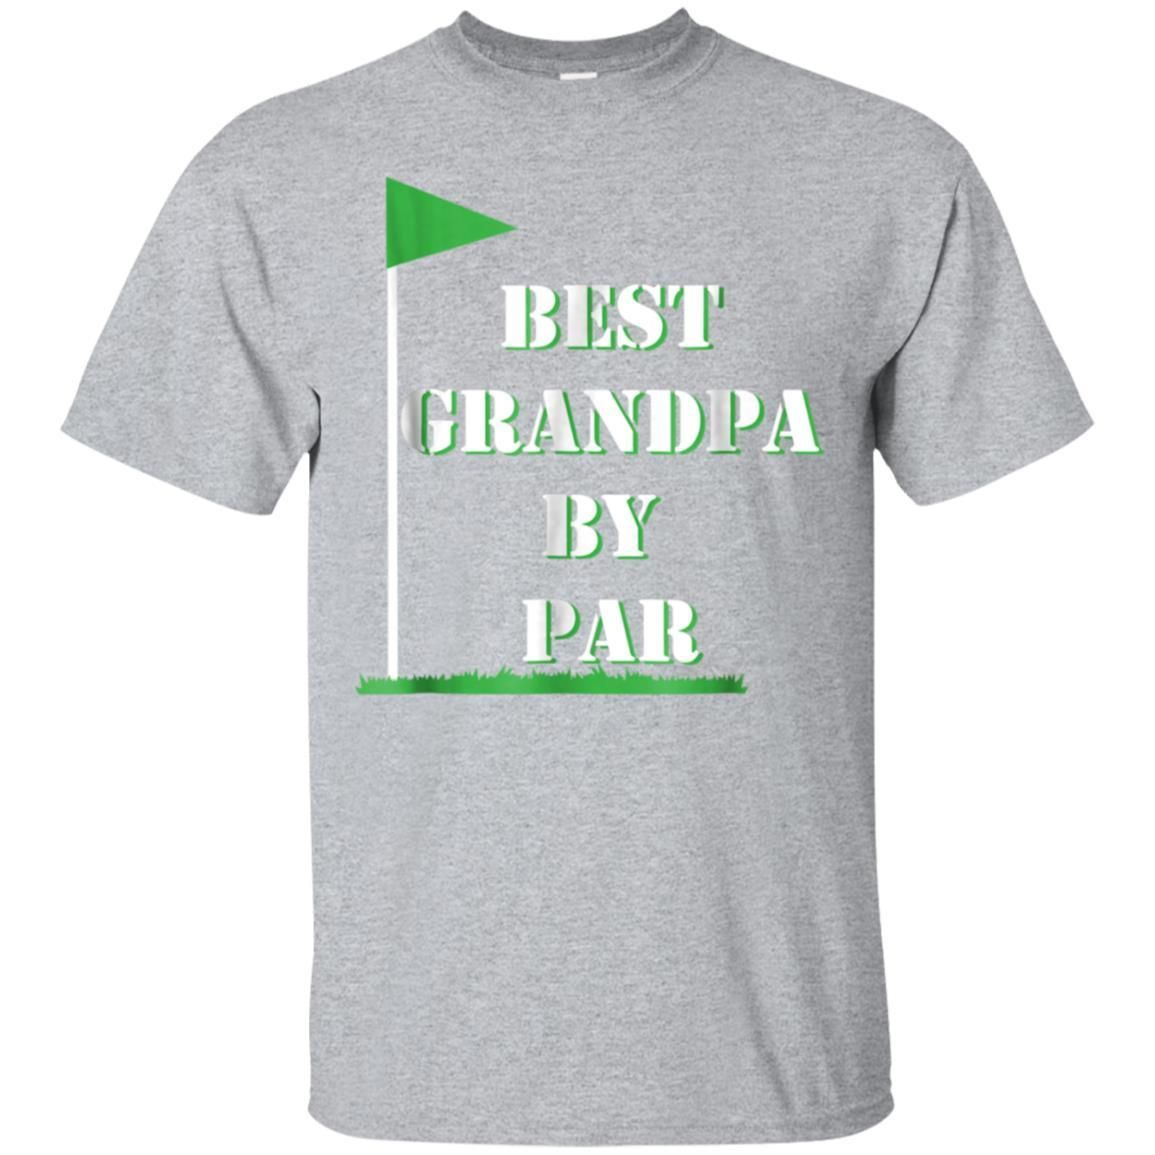 Awesome mens fathers day best grandpa by par funny golf